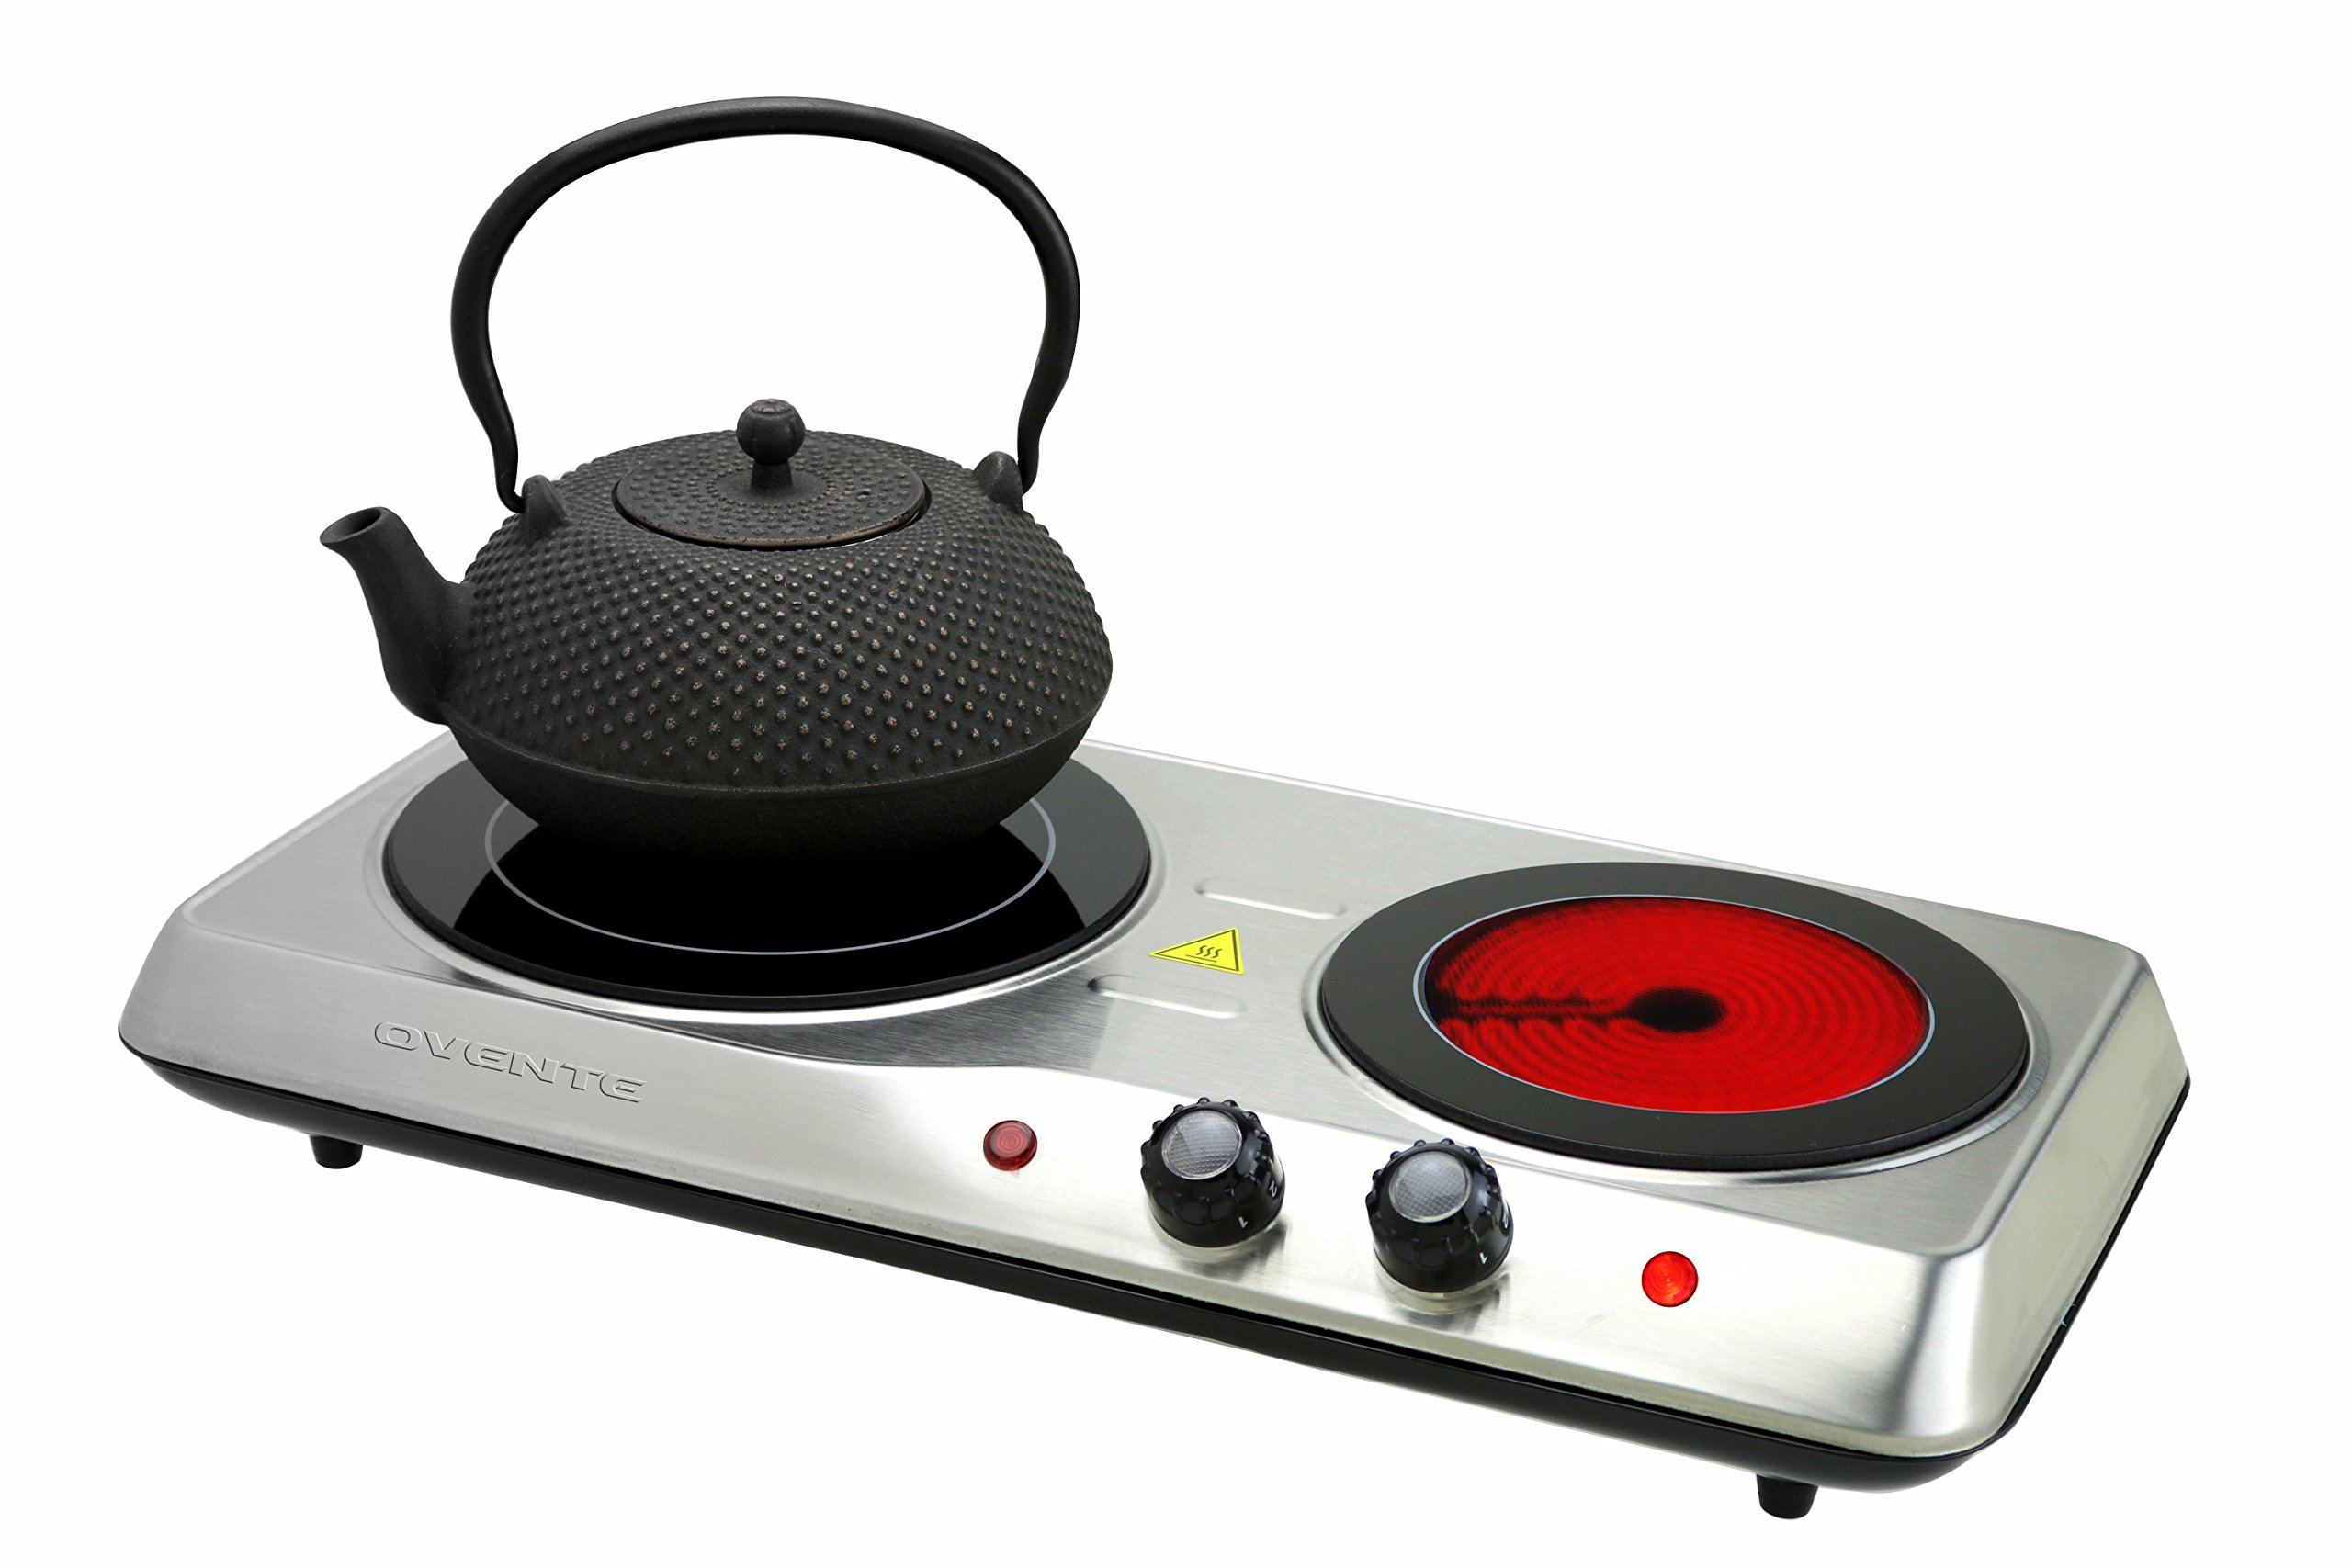 2 Two Electric Cooktop Cooking Stove Portable Ceramic Double Burner Hot  Plate